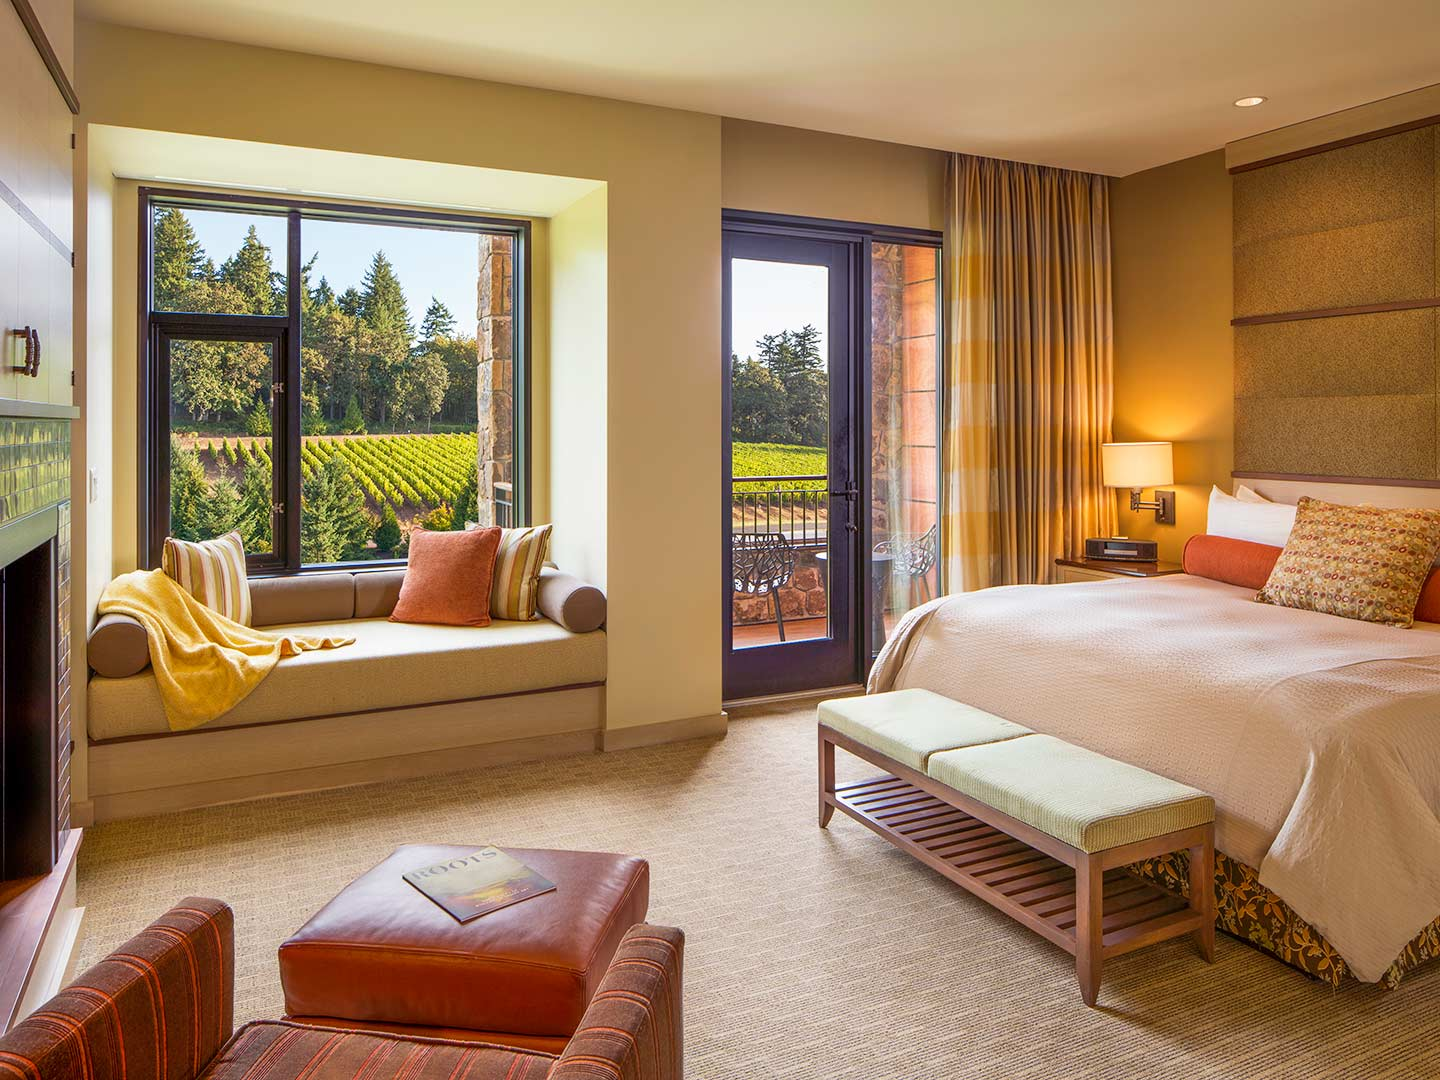 The Allison Inn & Spa is the nicest hotel in the Willamette Valley.